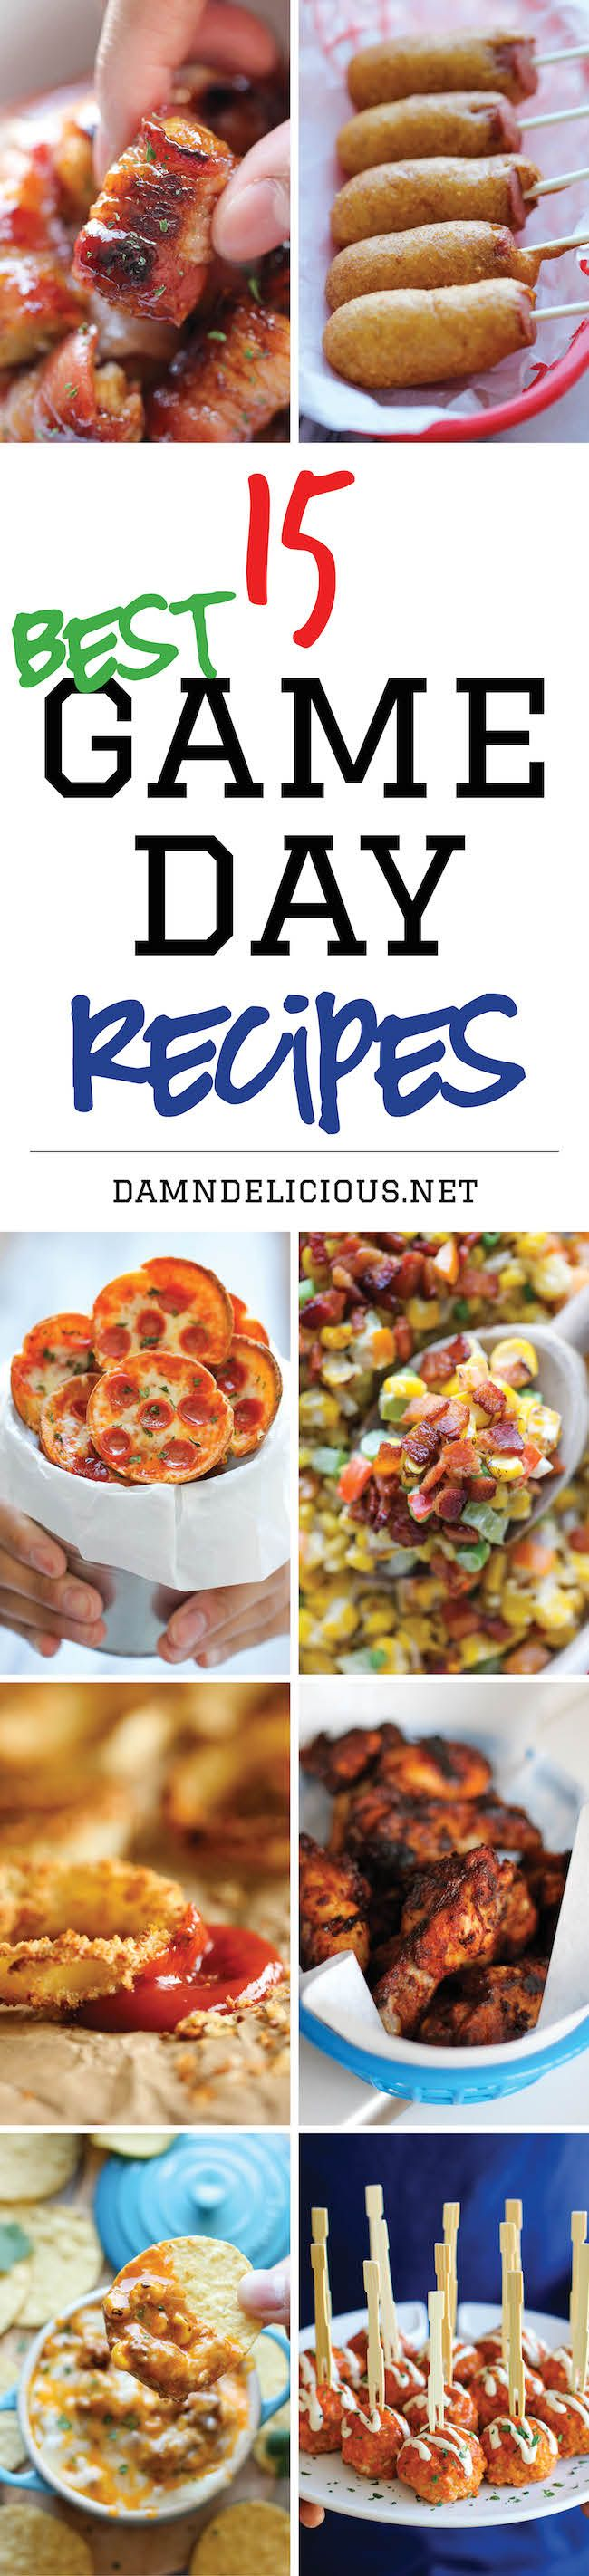 15 Best #GameDay Recipes - The best and easiest recipes for game day. Just be sure to double the recipes because everyone will be begging for seconds! #tailgate